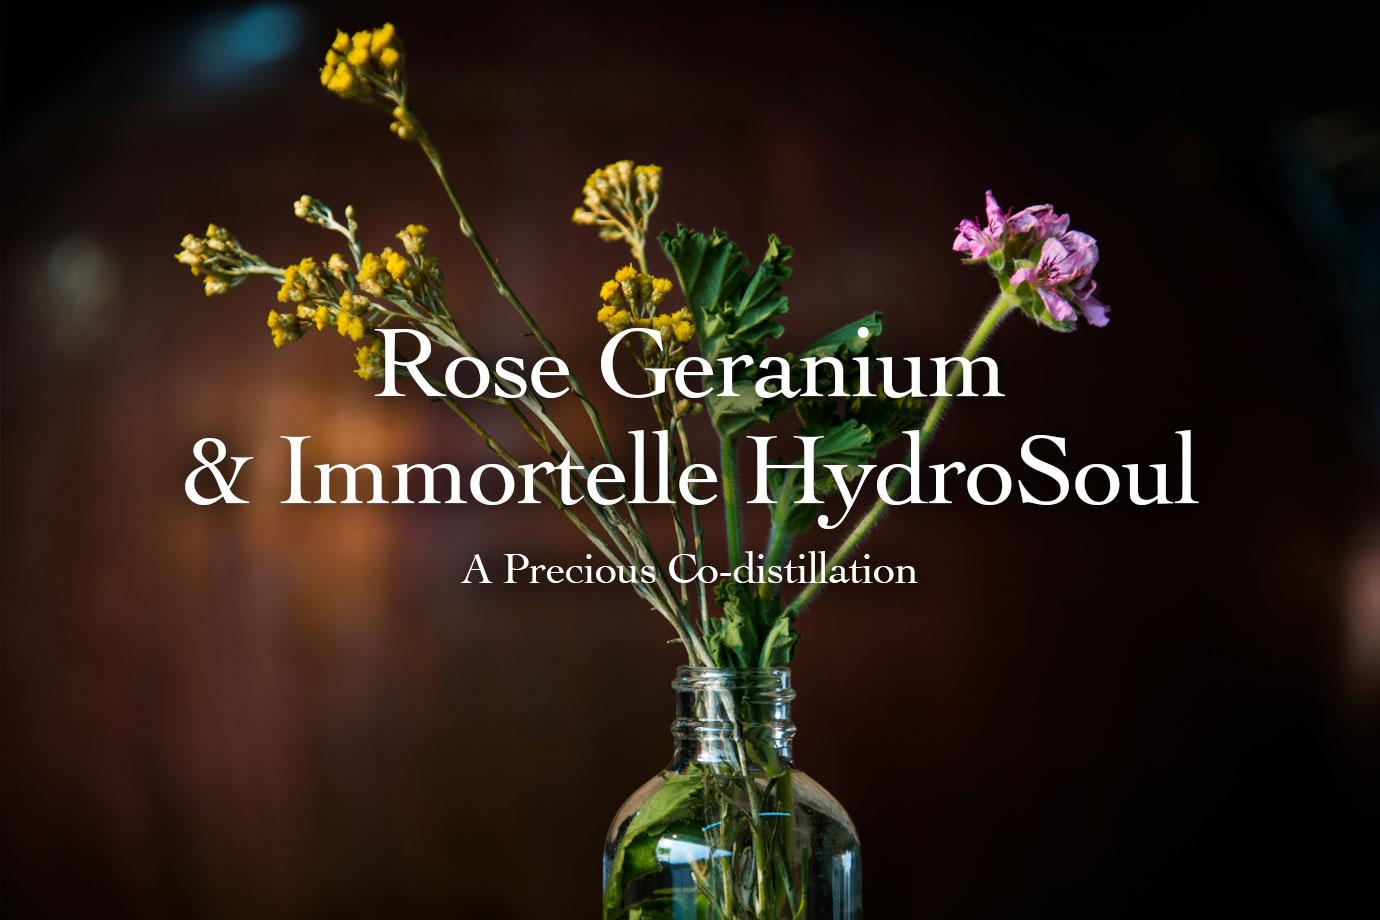 Rose Geranium & Immortelle HydroSoul ~ A Precious Co-Distillation